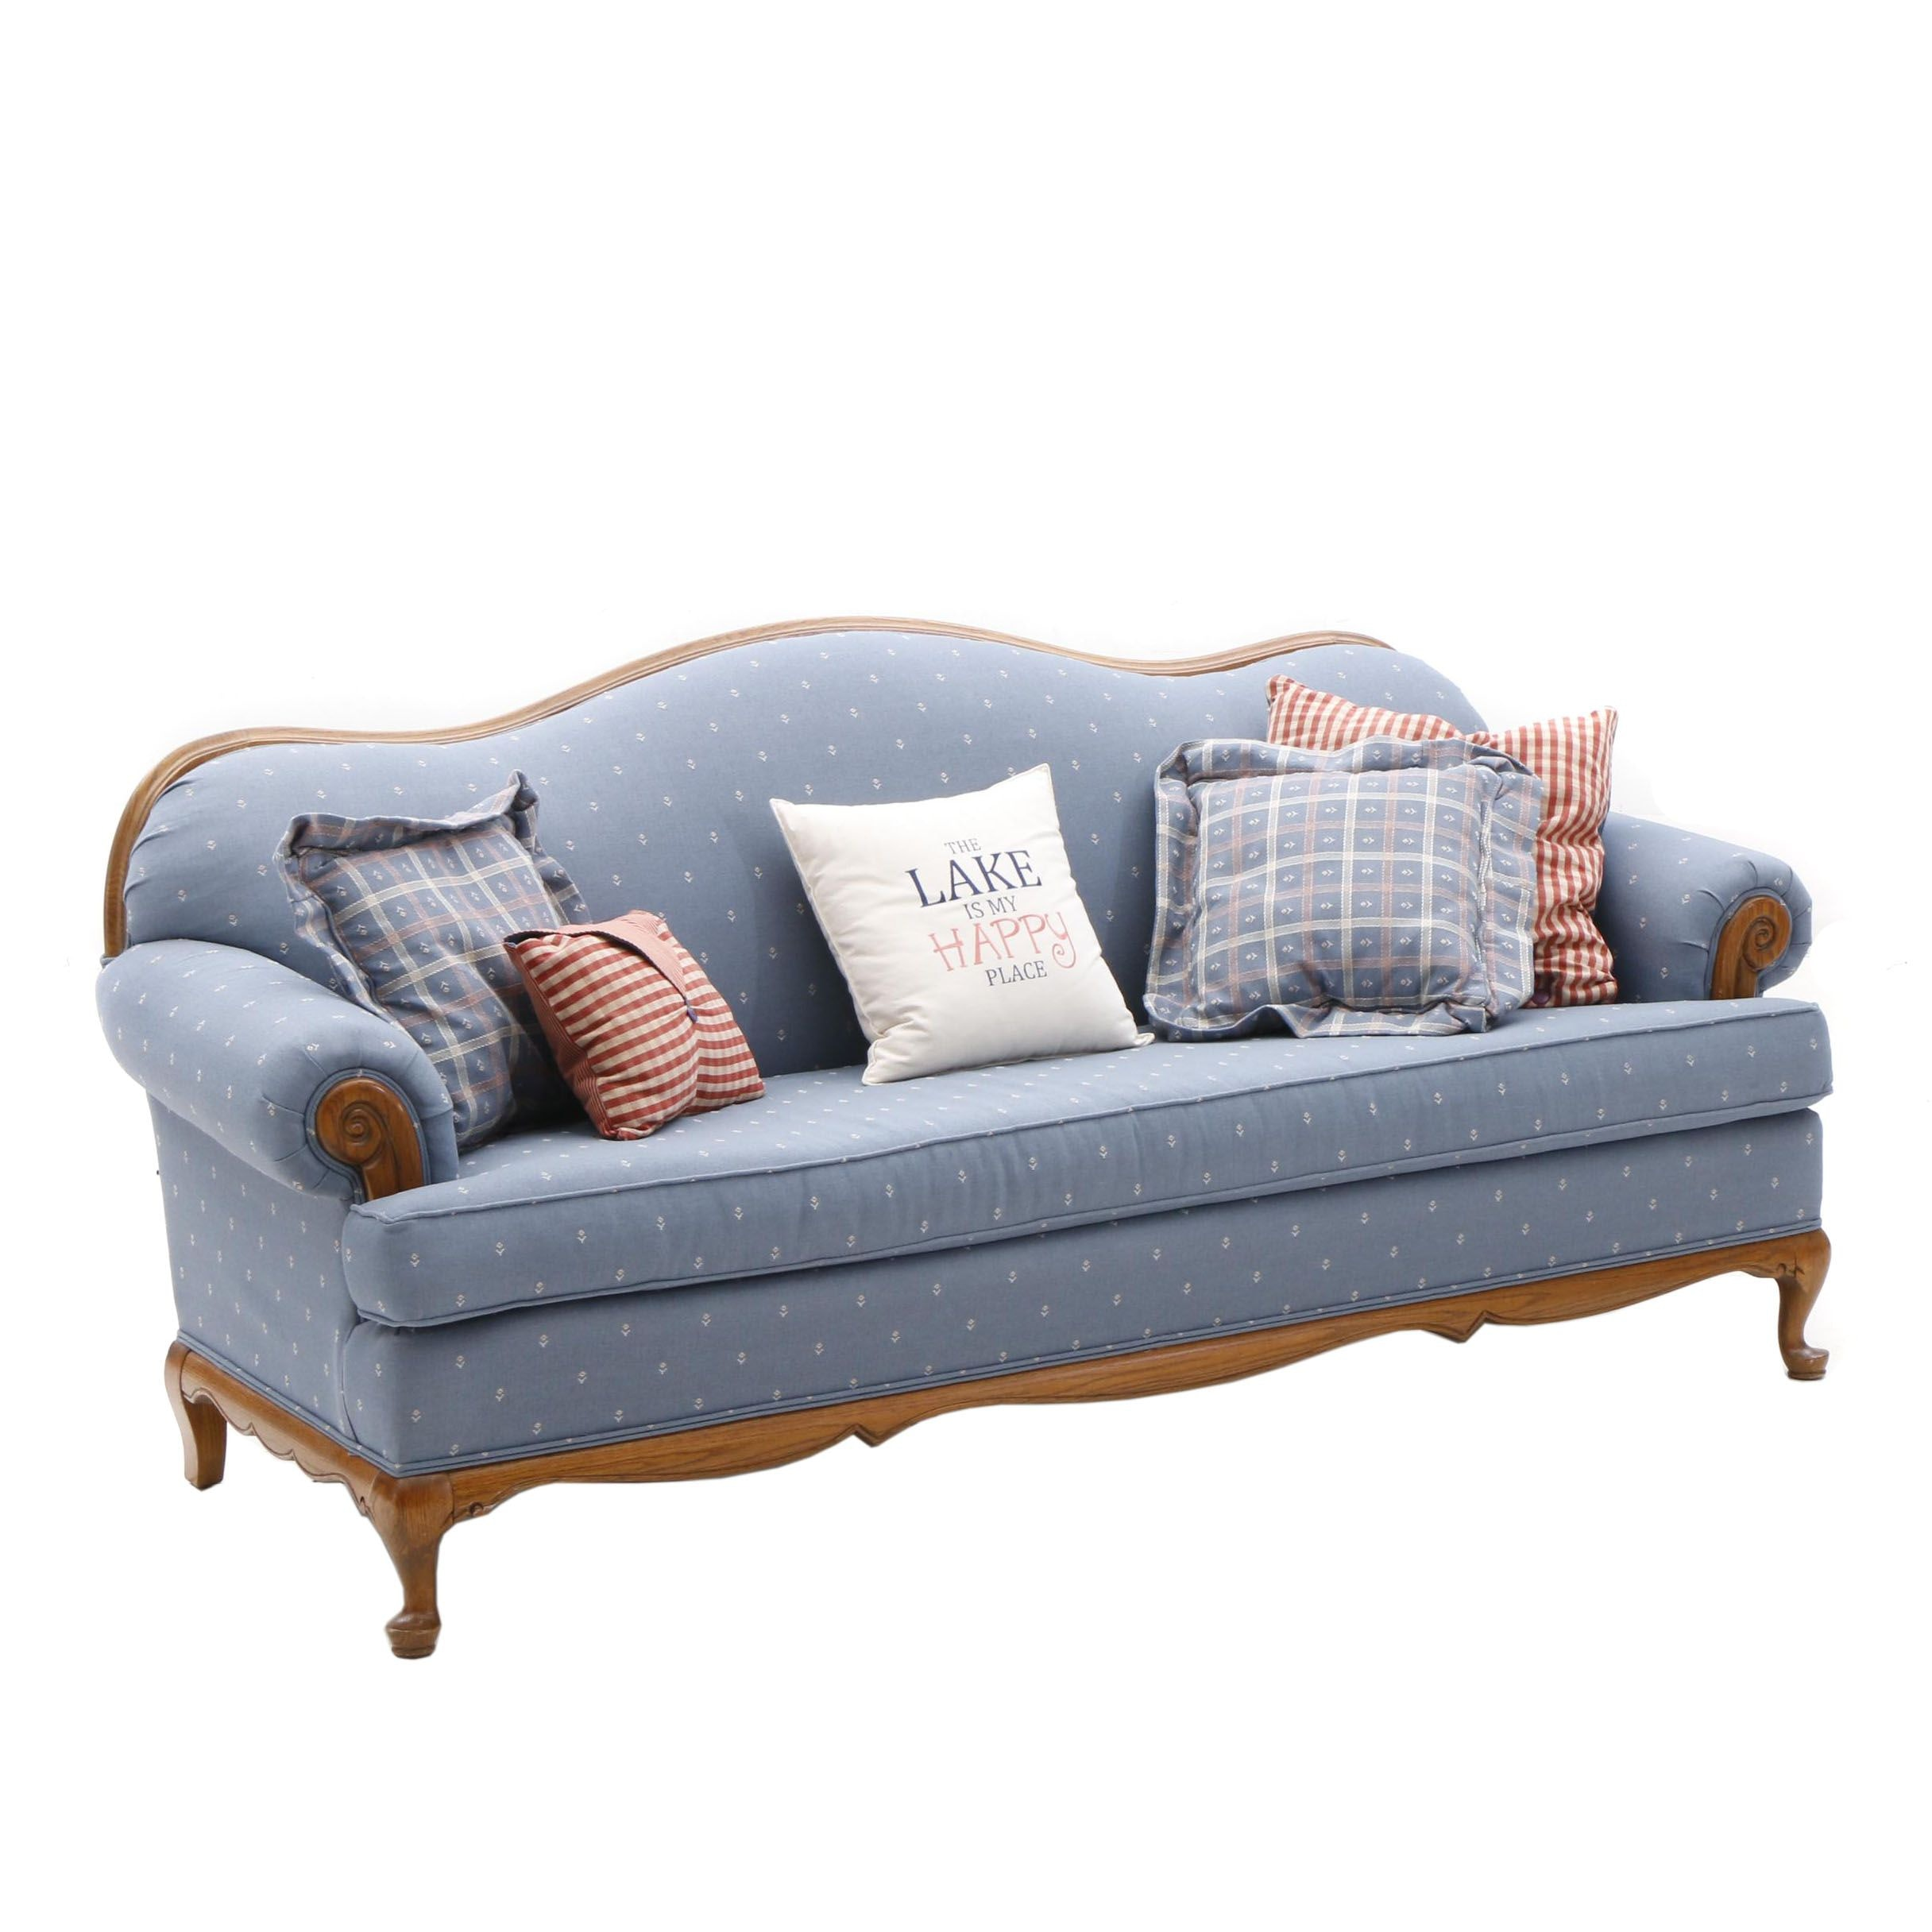 Camelback Upholstered Sofa by Broyhill in Blue with Accent Pillows